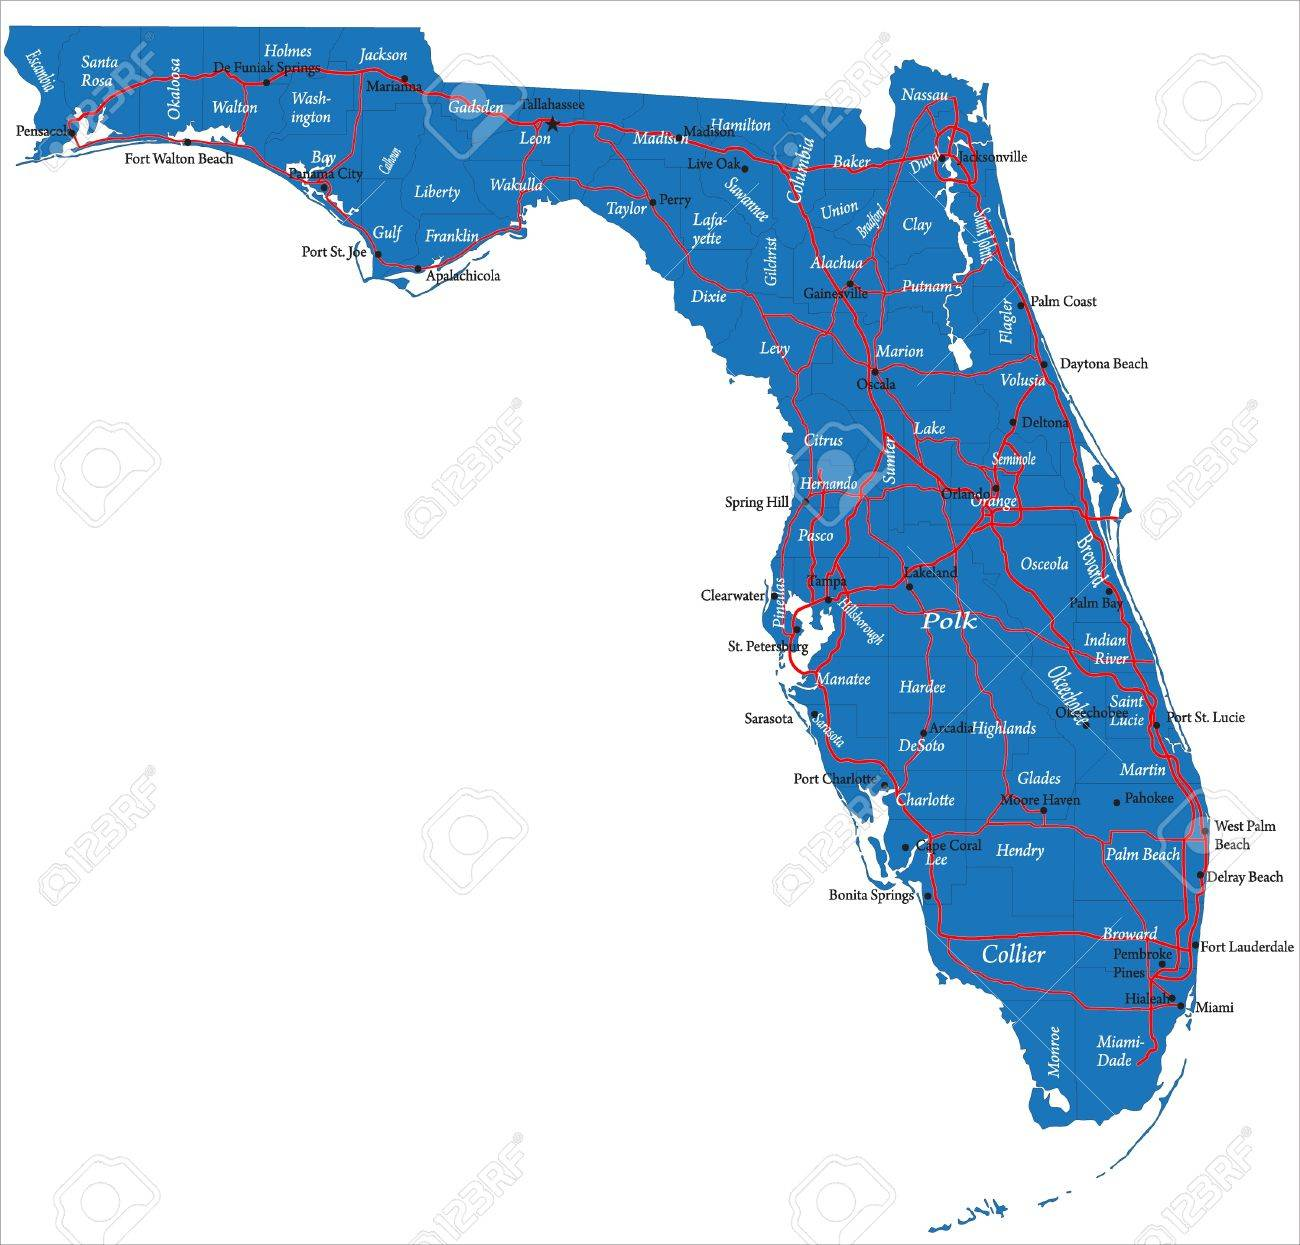 Florida Map Royalty Free Cliparts Vectors And Stock Illustration - Florida map port charlotte